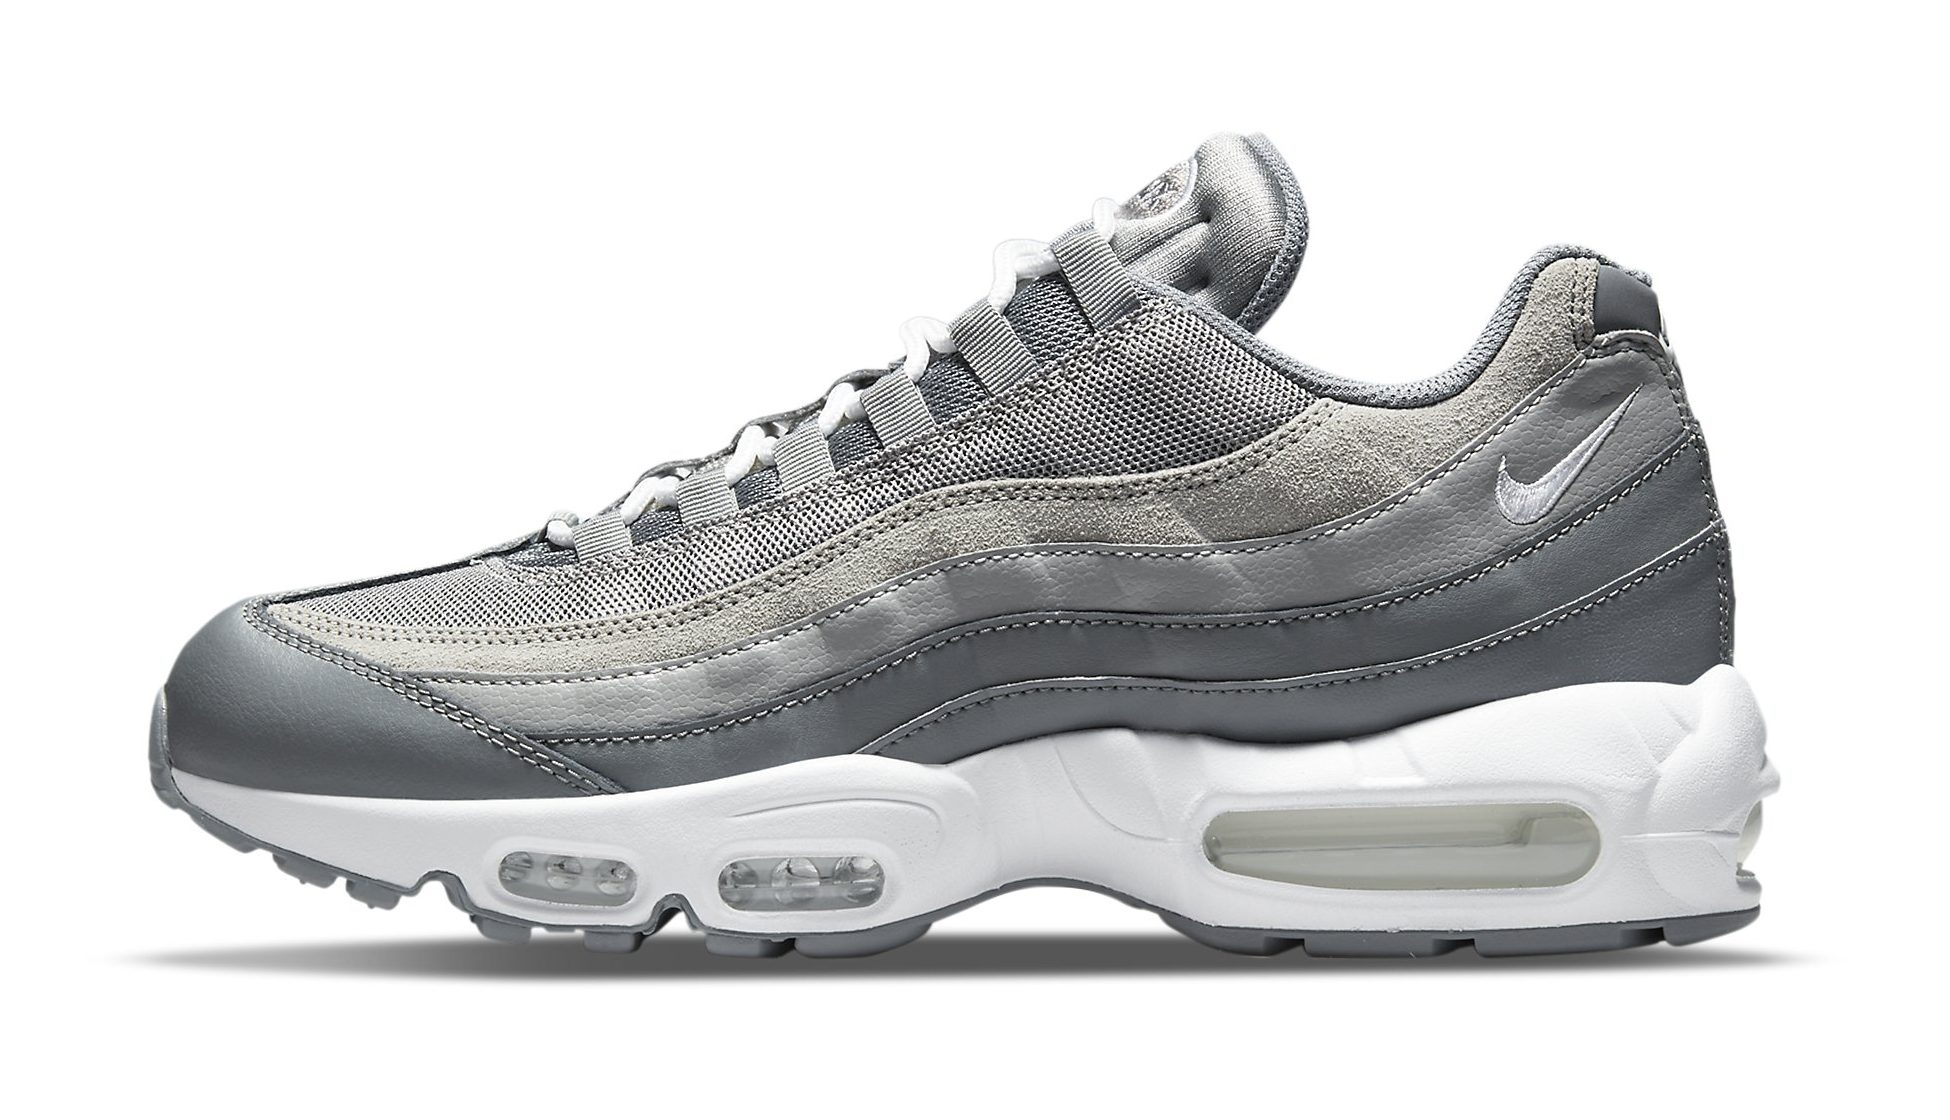 Nike Air Max 95 'Cool Grey' Release Info: Here's How to Buy a Pair ...